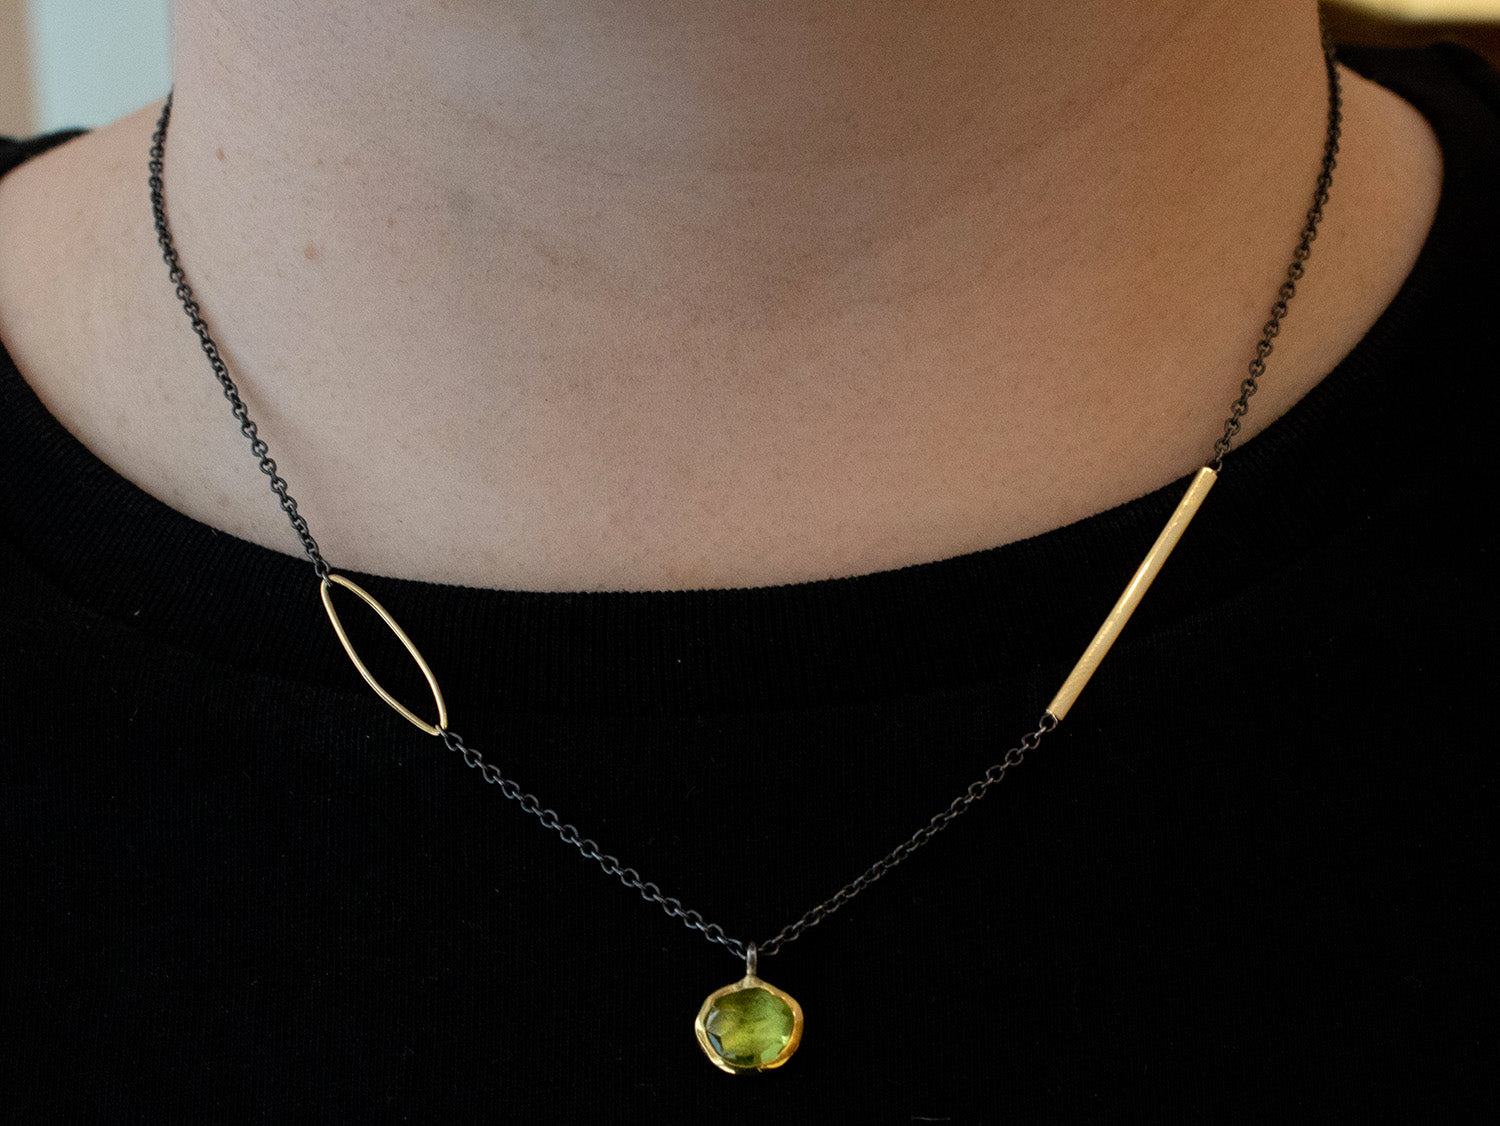 18K Yellow Gold, Oxidized Sterling Silver and Peridot Necklace